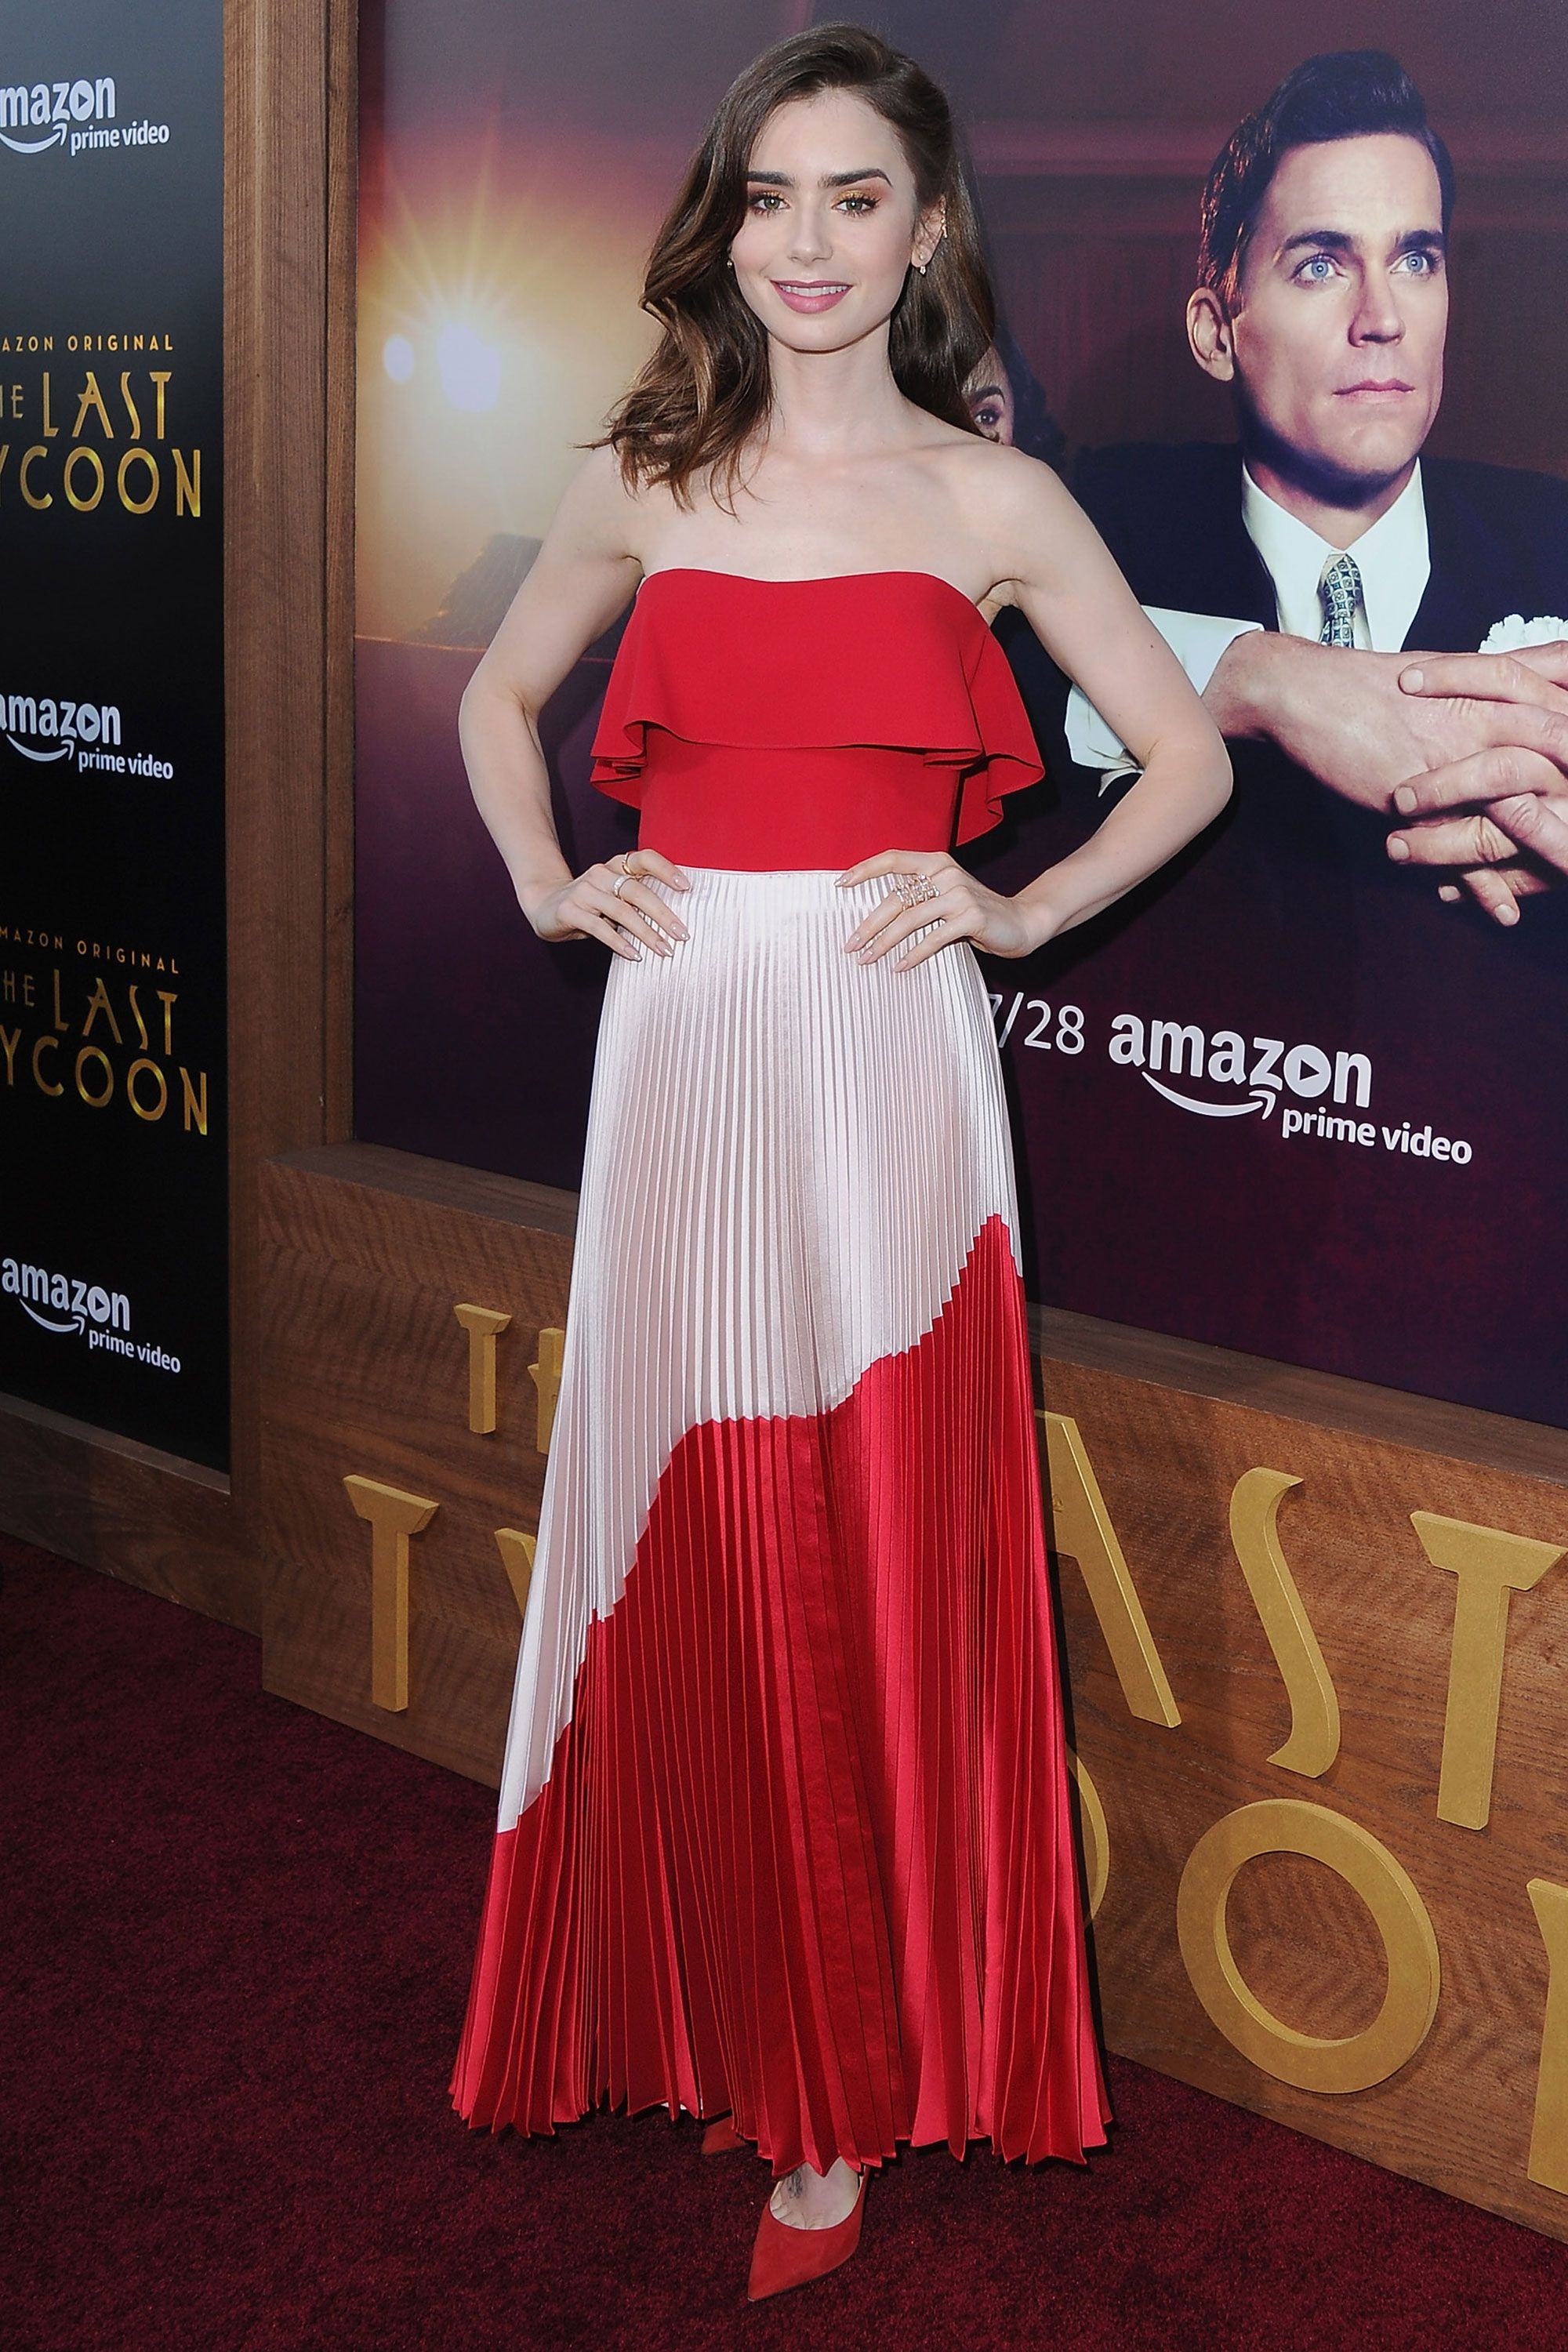 "<p><strong data-redactor-tag=""strong"" data-verified=""redactor"">27 July</strong> Lily Collins 穿著一件亮麗的Reem Acra紅色華服出席洛杉磯《最後的大亨》影集首映會,禮服下身以白紅斜切設計的百摺長裙呈現布料光澤與垂墜感,美好模樣讓現場閃光燈不停。<span class=""redactor-invisible-space"" data-verified=""redactor"" data-redactor-tag=""span"" data-redactor-class=""redactor-invisible-space""></span><span class=""redactor-invisible-space"" data-verified=""redactor"" data-redactor-tag=""span"" data-redactor-class=""redactor-invisible-space""></span></p>"